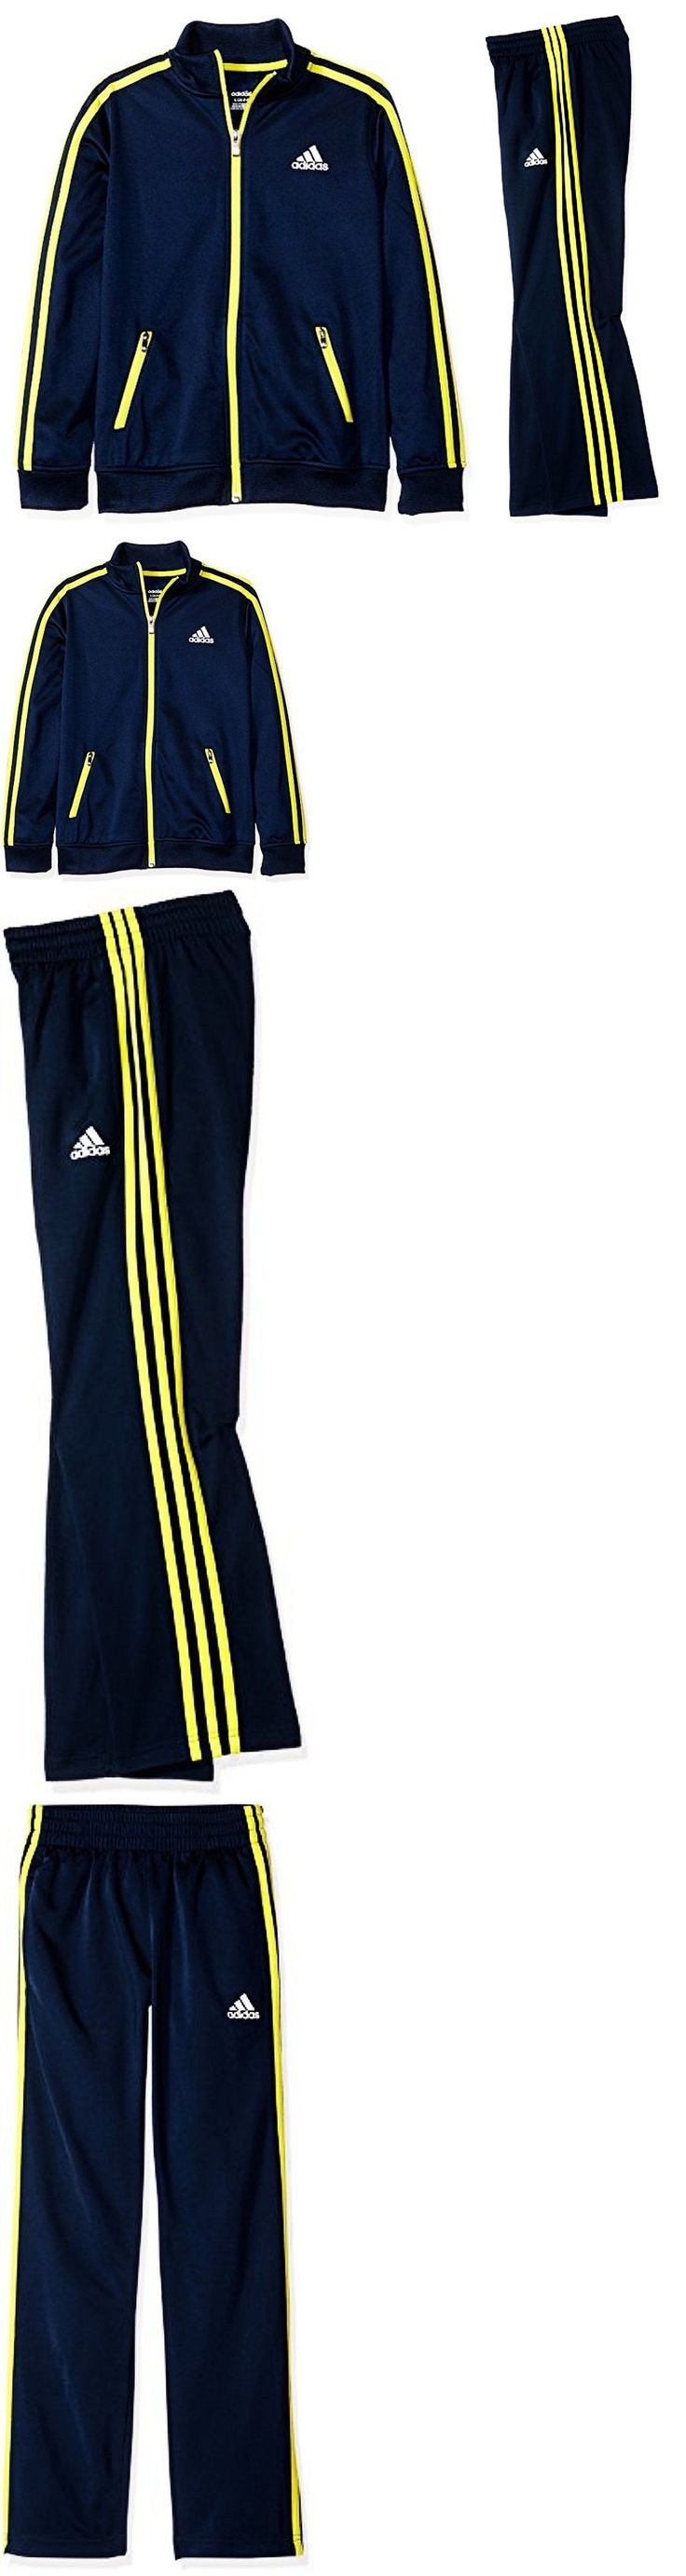 Outfits and Sets 156790: Adidas Big Boys 2-Pc. Sweatshirt And Pants Size Xl (18) Collegiate Navy -> BUY IT NOW ONLY: $59.99 on eBay!